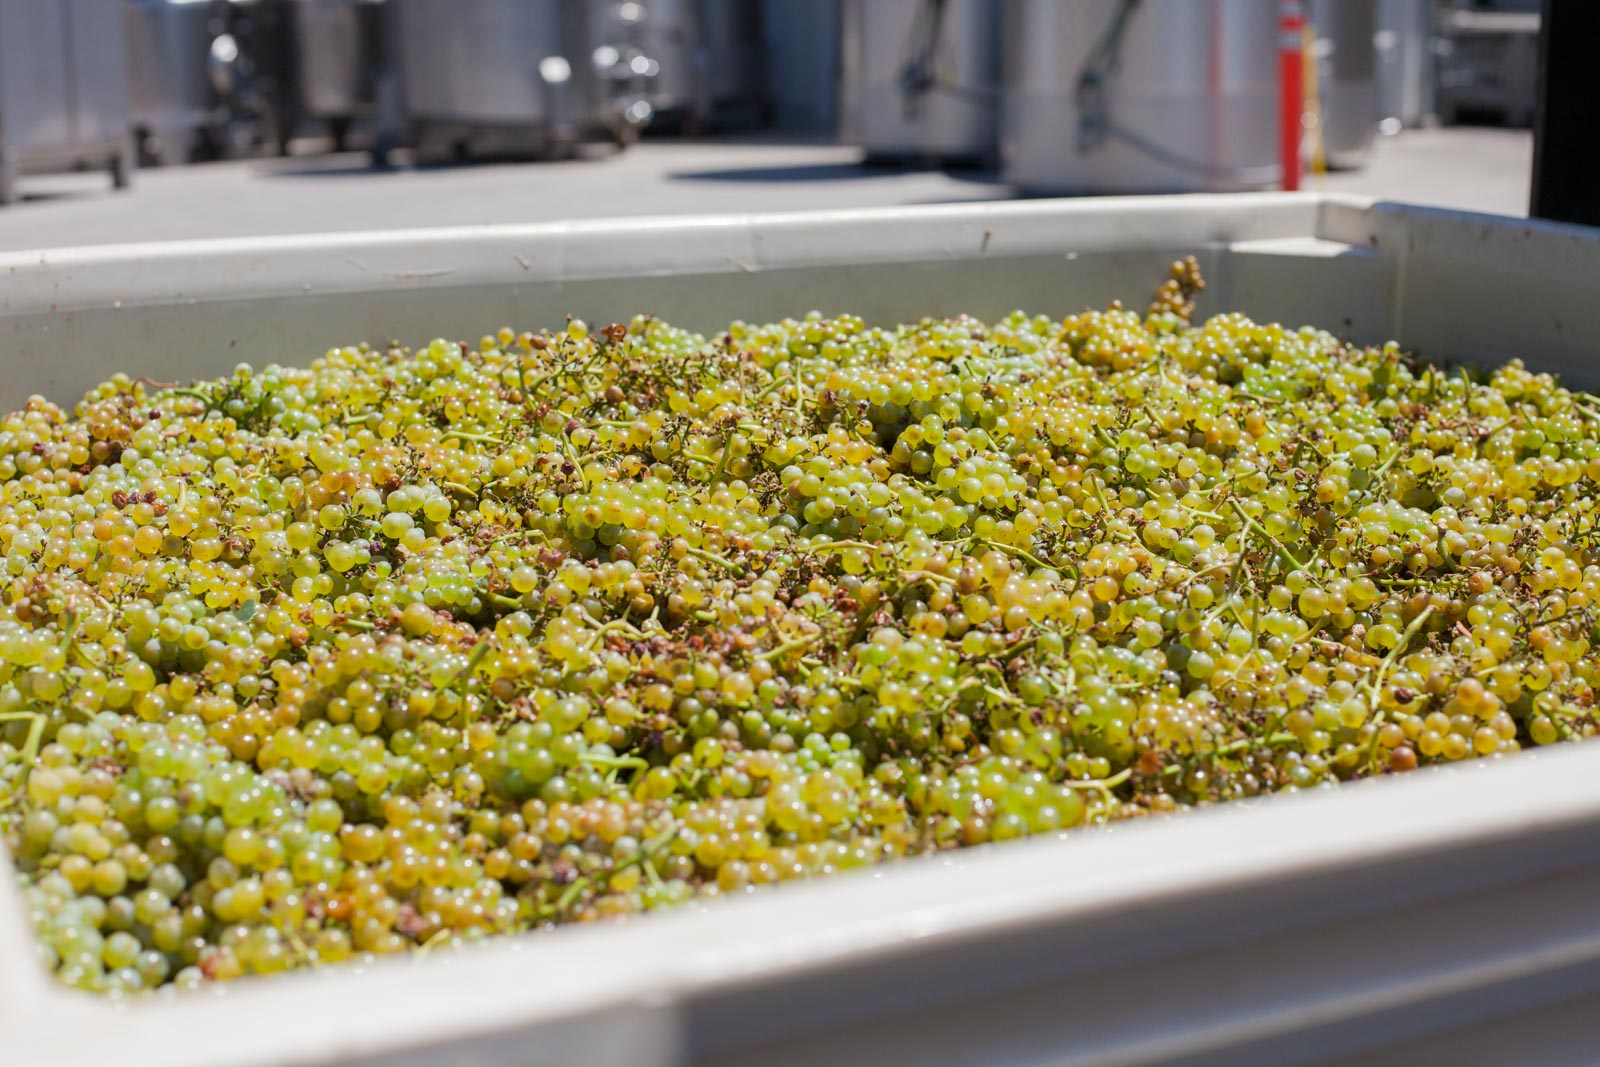 Chardonnay grapes from the Laurels Grade vineyard in Monterrey, just arrived from the truck at Copain. ©Kevin Day / Opening a Bottle